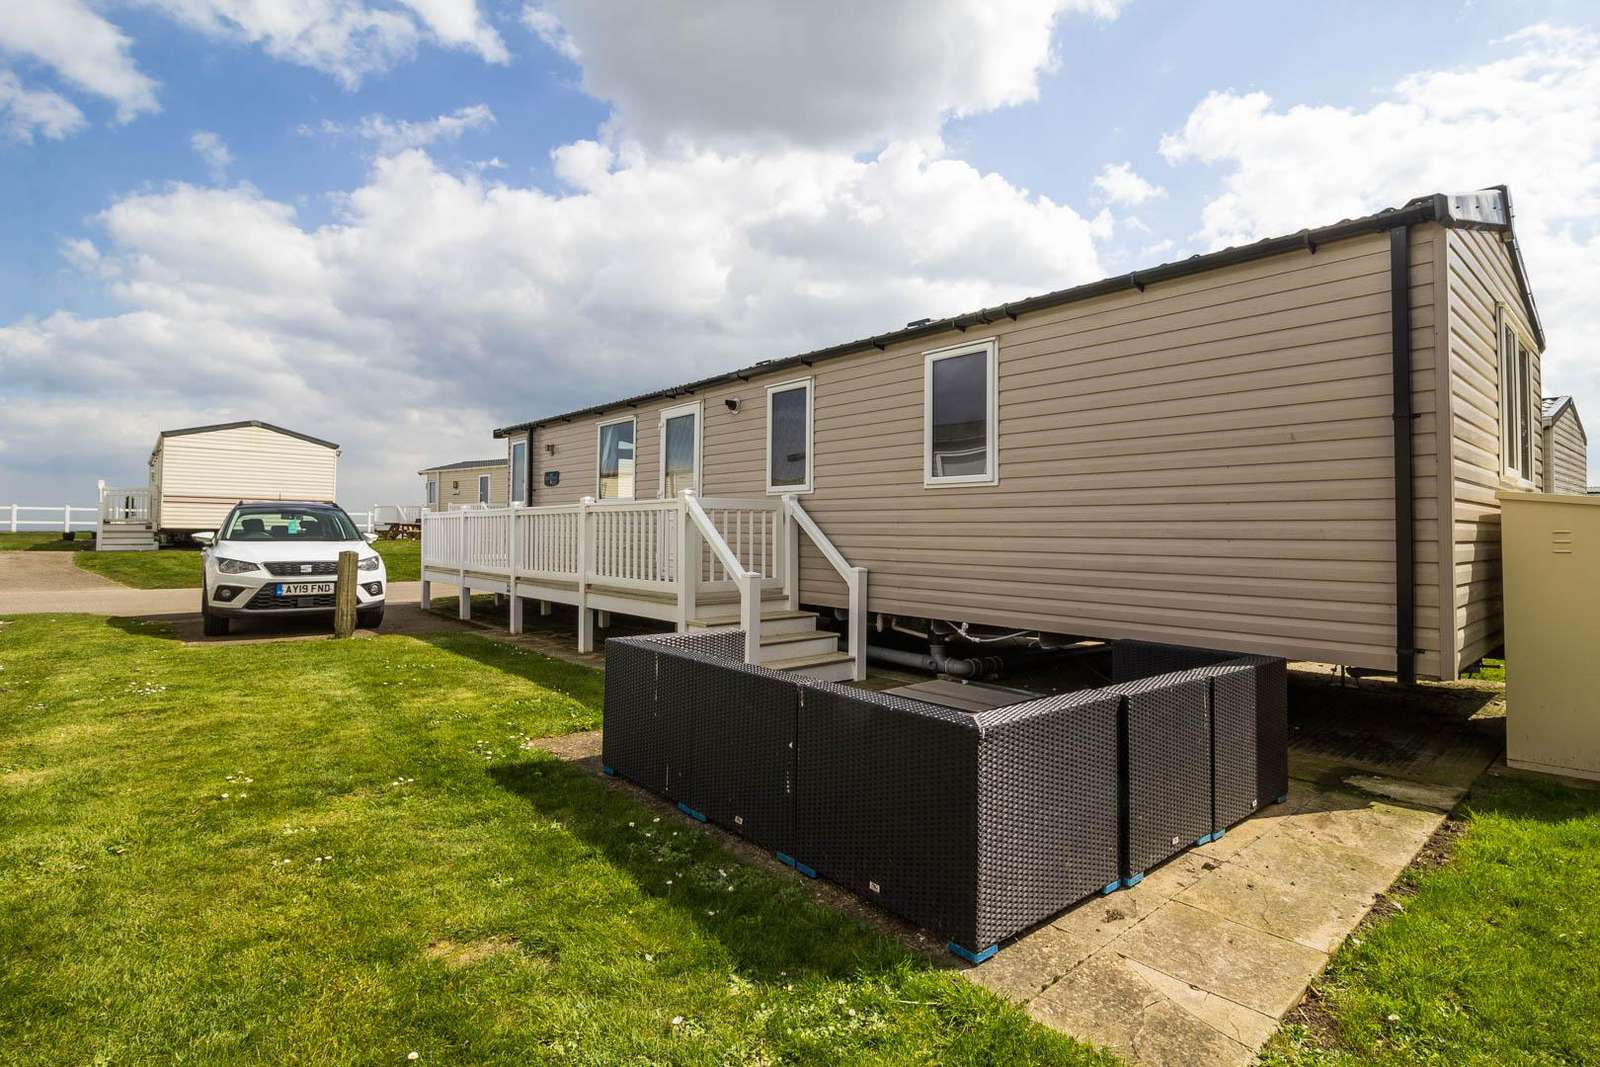 80024OV – Ocean View area, 2 bed, 6 berth caravan with a partial sea view. Diamond-Plus rated. - property